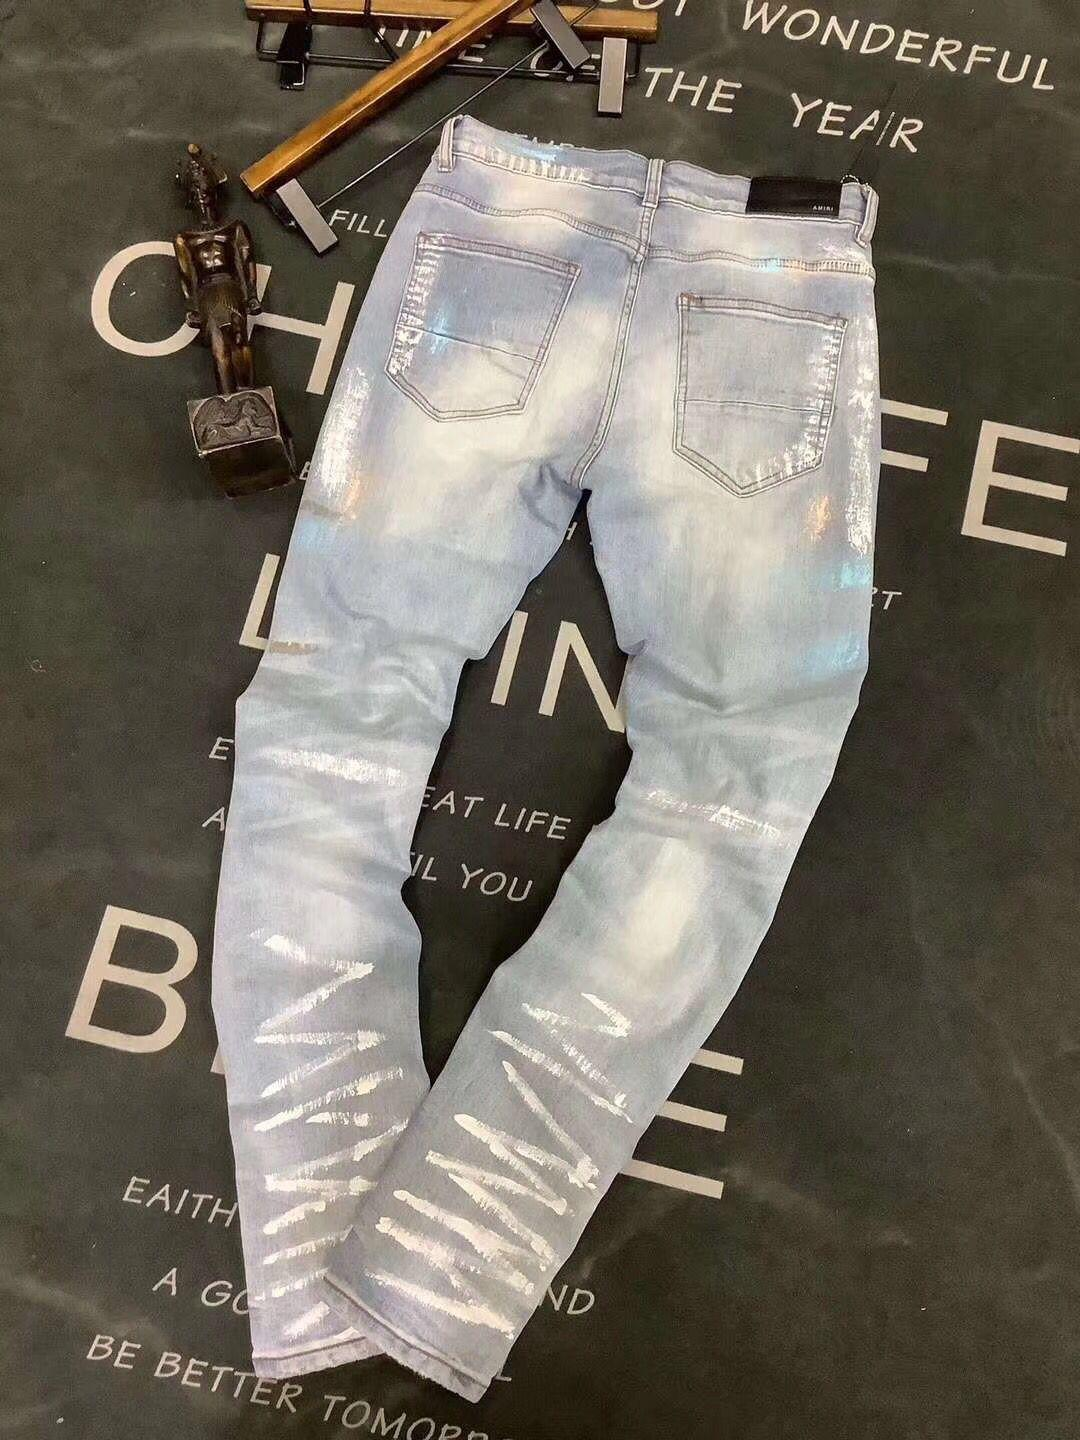 2020 Top Crime Bad Men Jeans Skinny Jeans Brand Motorcycle Riders Denim Fashion Designer Hip Hop Mens Jeans Quality Is Very Good 4010 From Jinbaoshangchang88 51 17 Dhgate Com